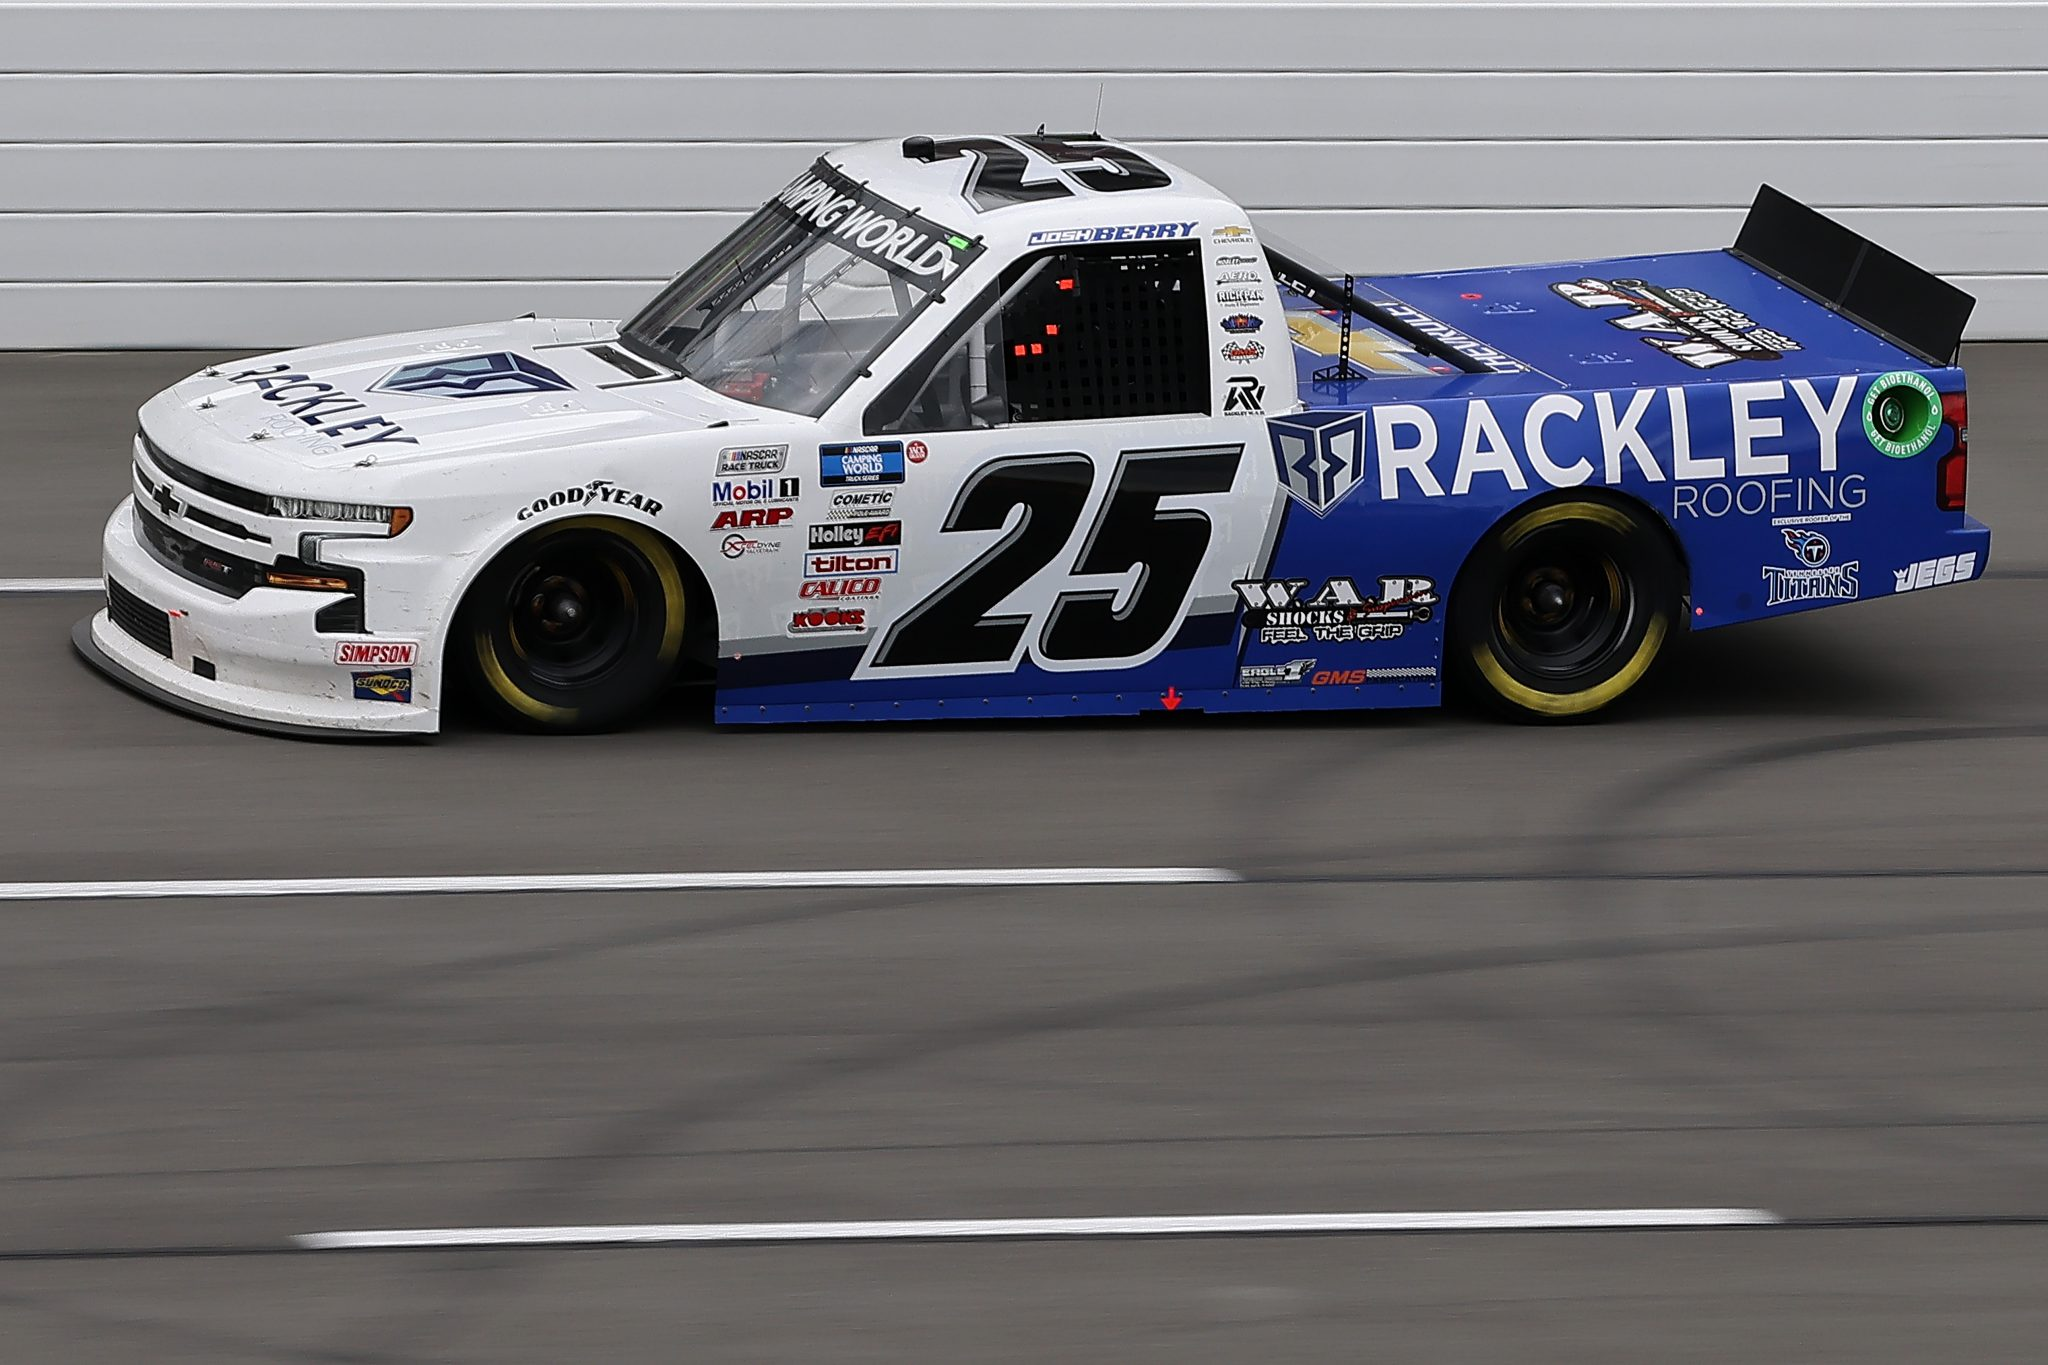 LONG POND, PENNSYLVANIA - JUNE 26: Josh Berry, driver of the #25 Rackley Roofing Chevrolet, drives during the NASCAR Camping World Truck Series CRC Brakleen 150 at Pocono Raceway on June 26, 2021 in Long Pond, Pennsylvania. (Photo by James Gilbert/Getty Images) | Getty Images